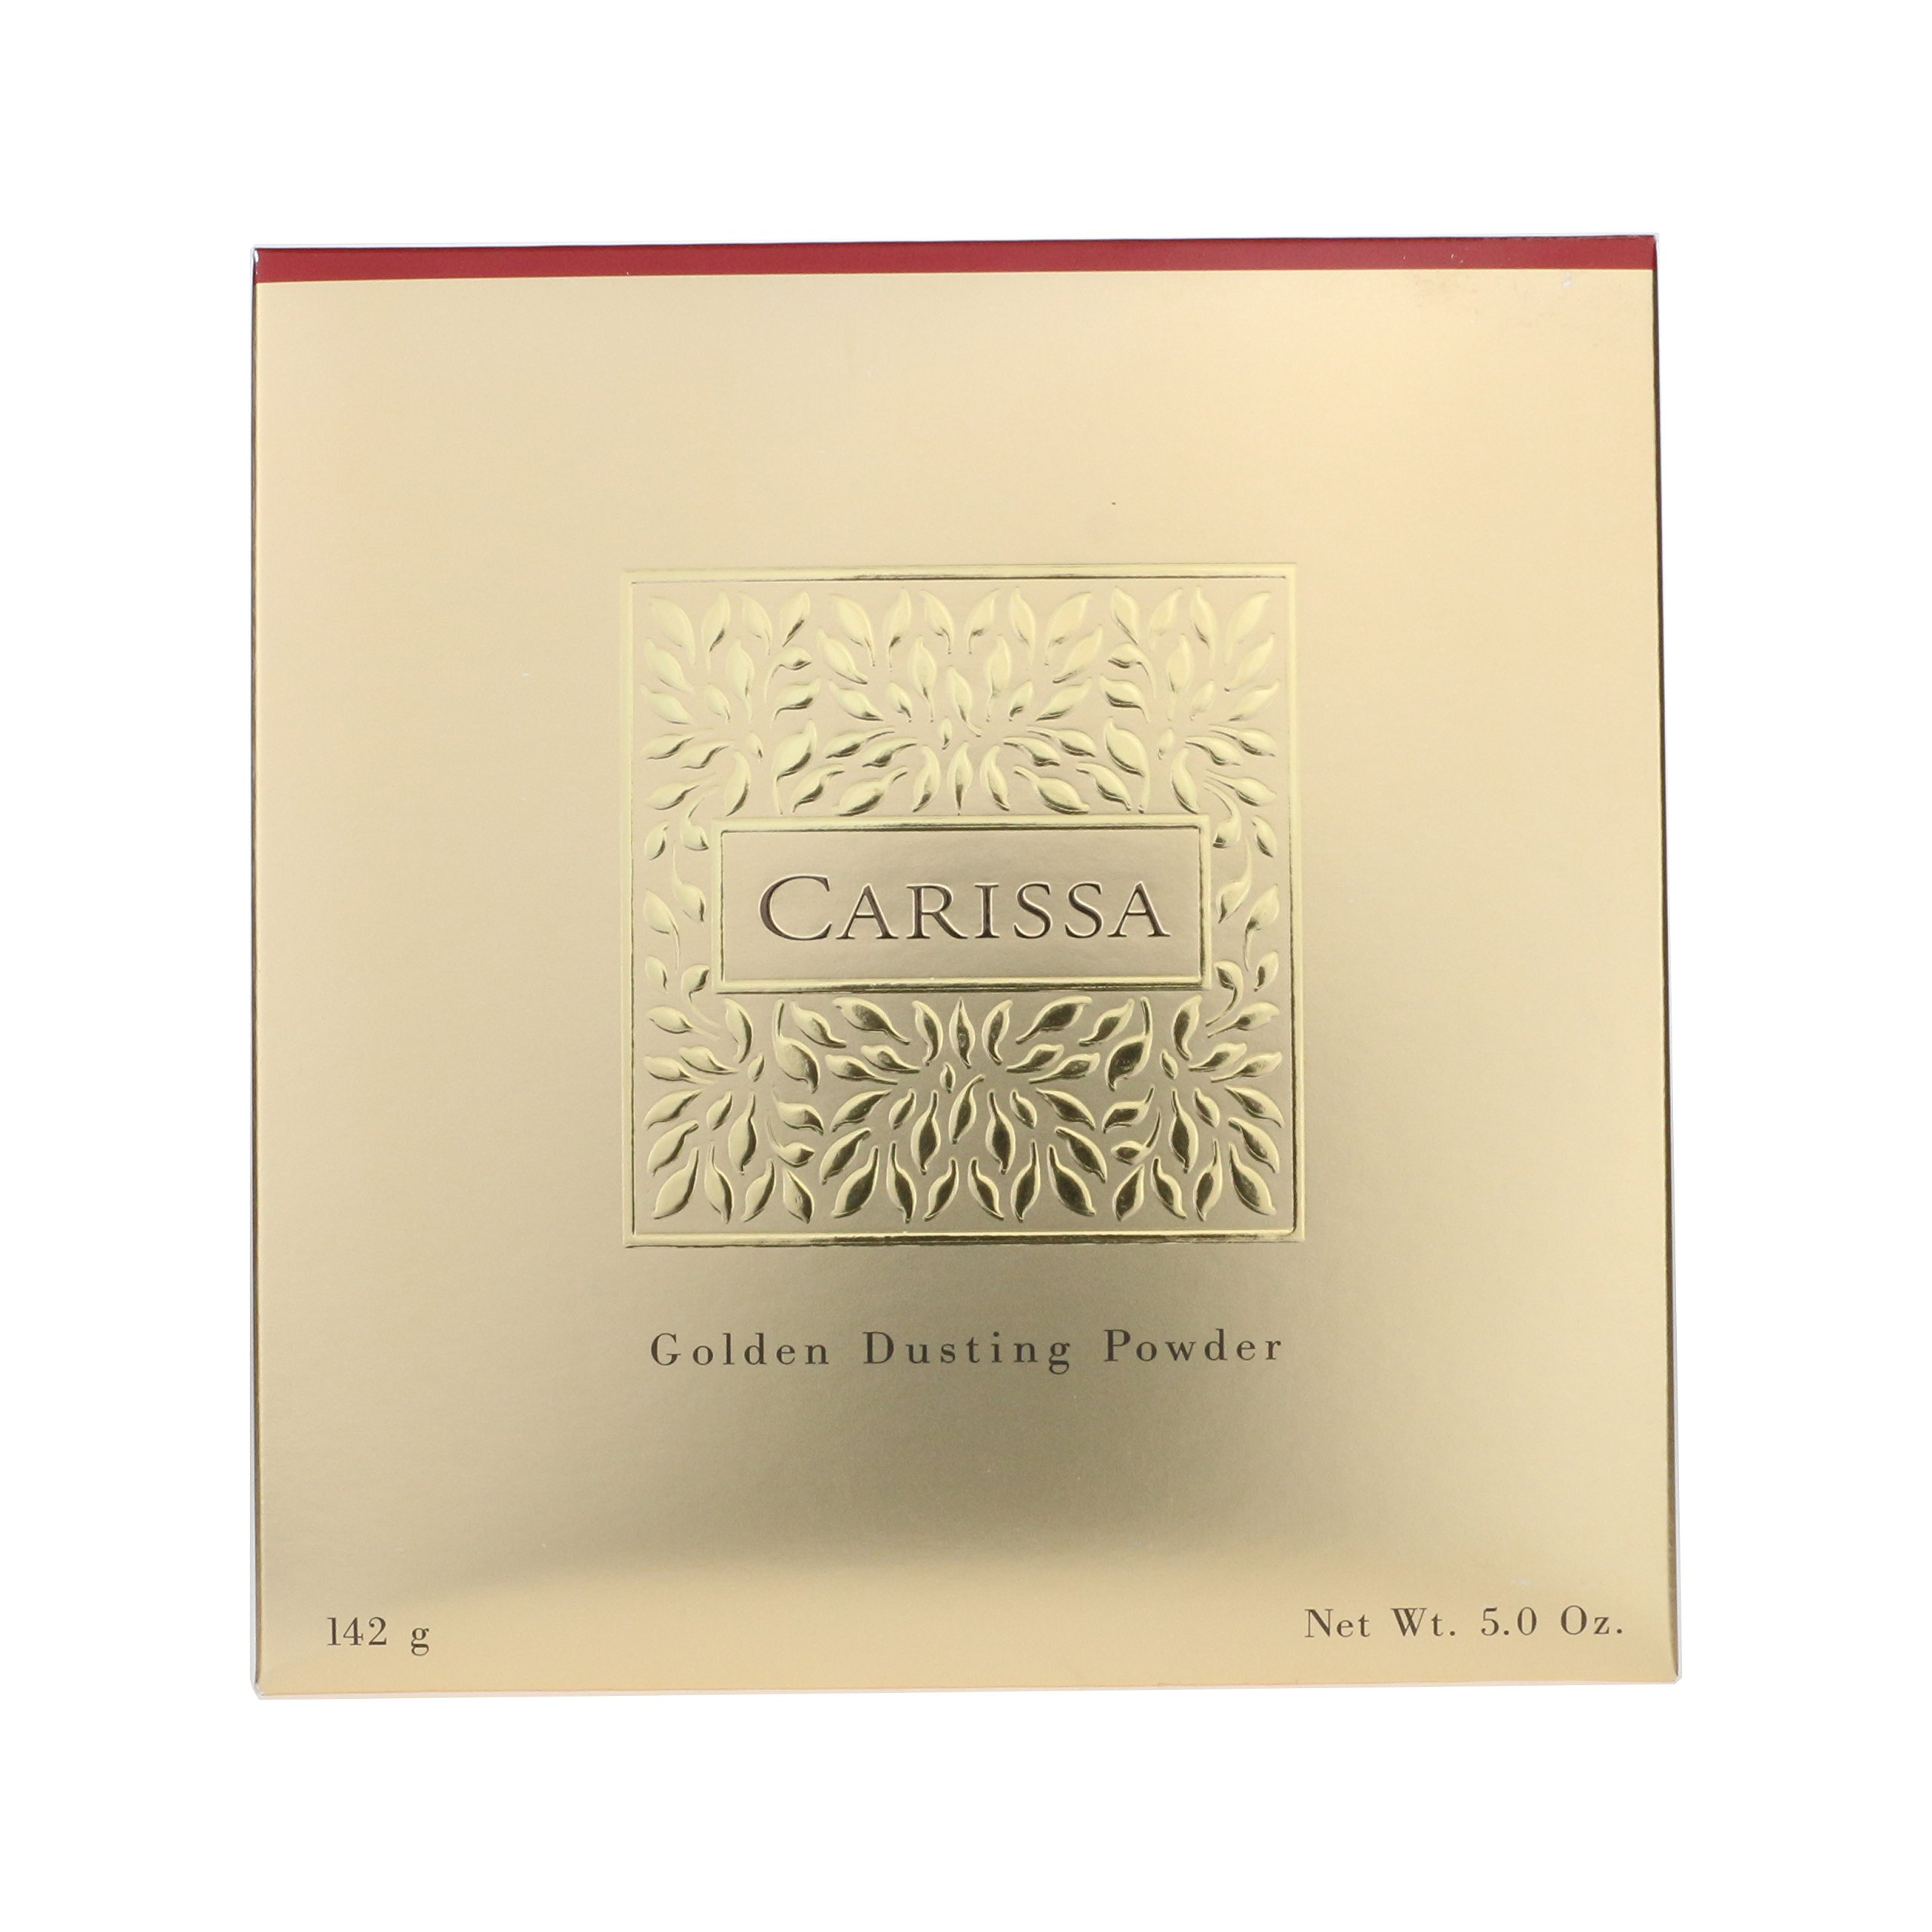 Carissa Golden Dusting Powder For Women 5.0 Oz/142 g Brand New Item In Box! by Kenrose (Image #1)